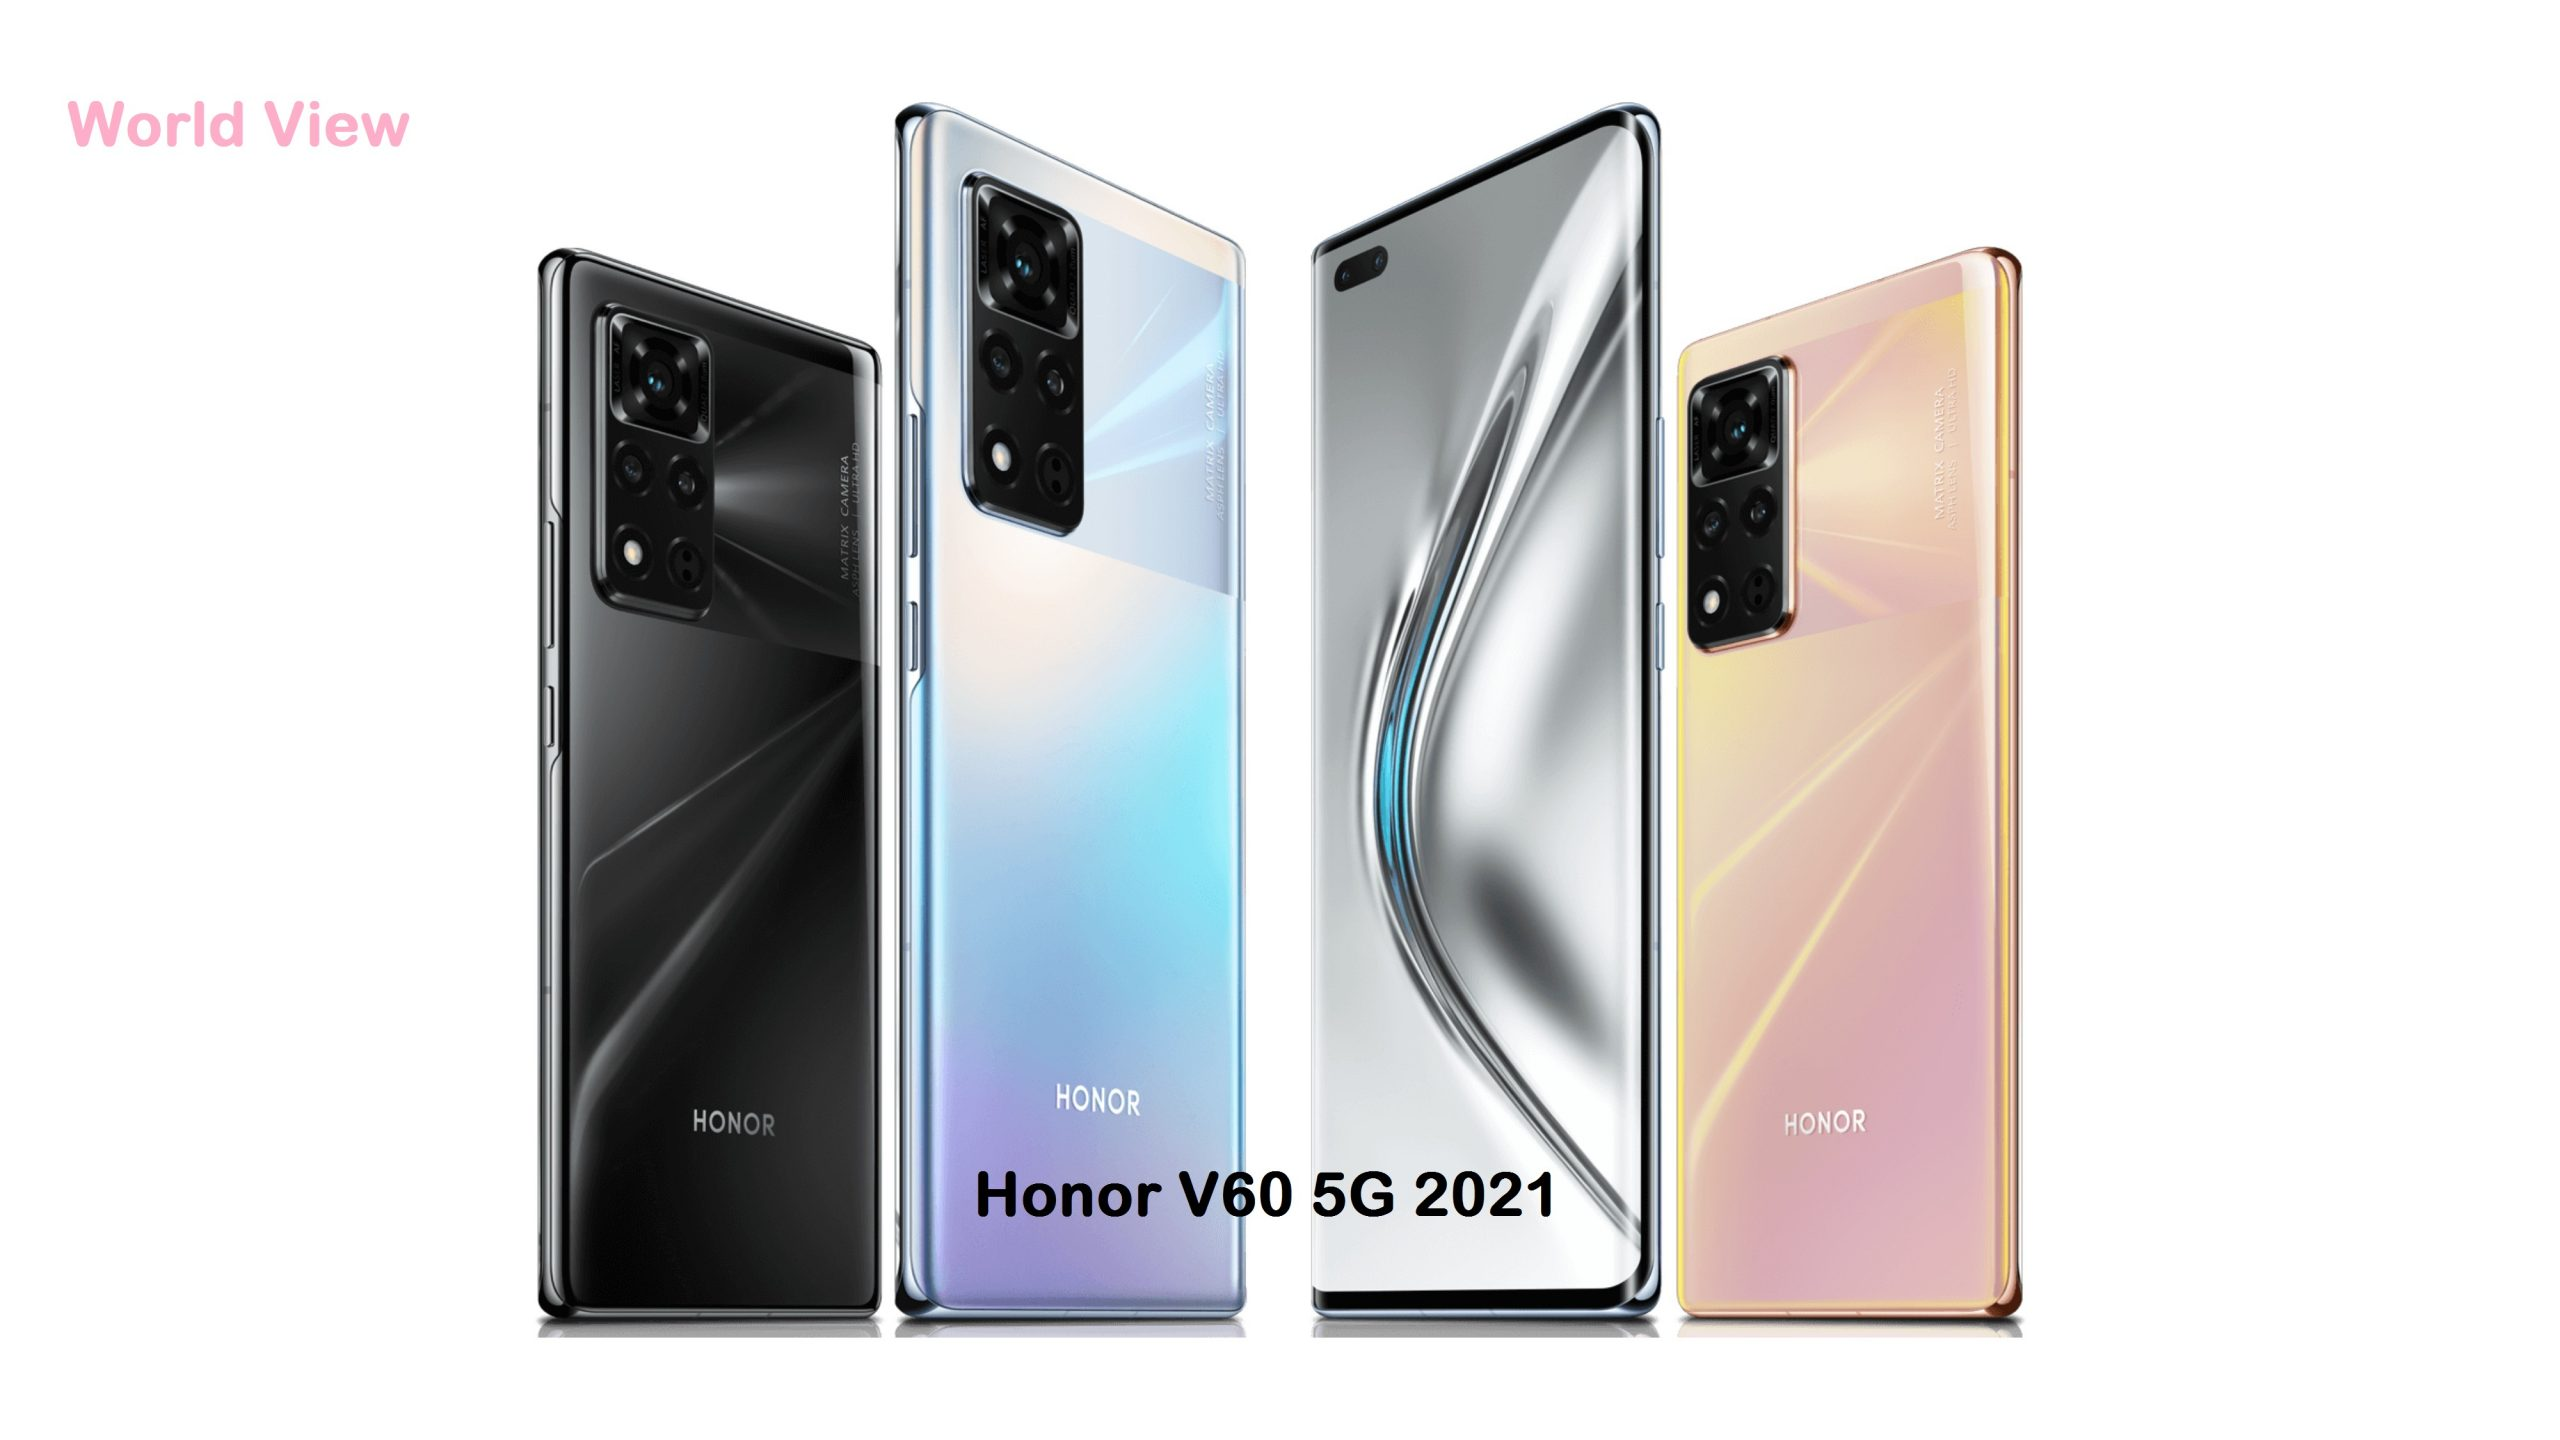 Honor V60 5G 2021 Price in Pakistan and Release Date